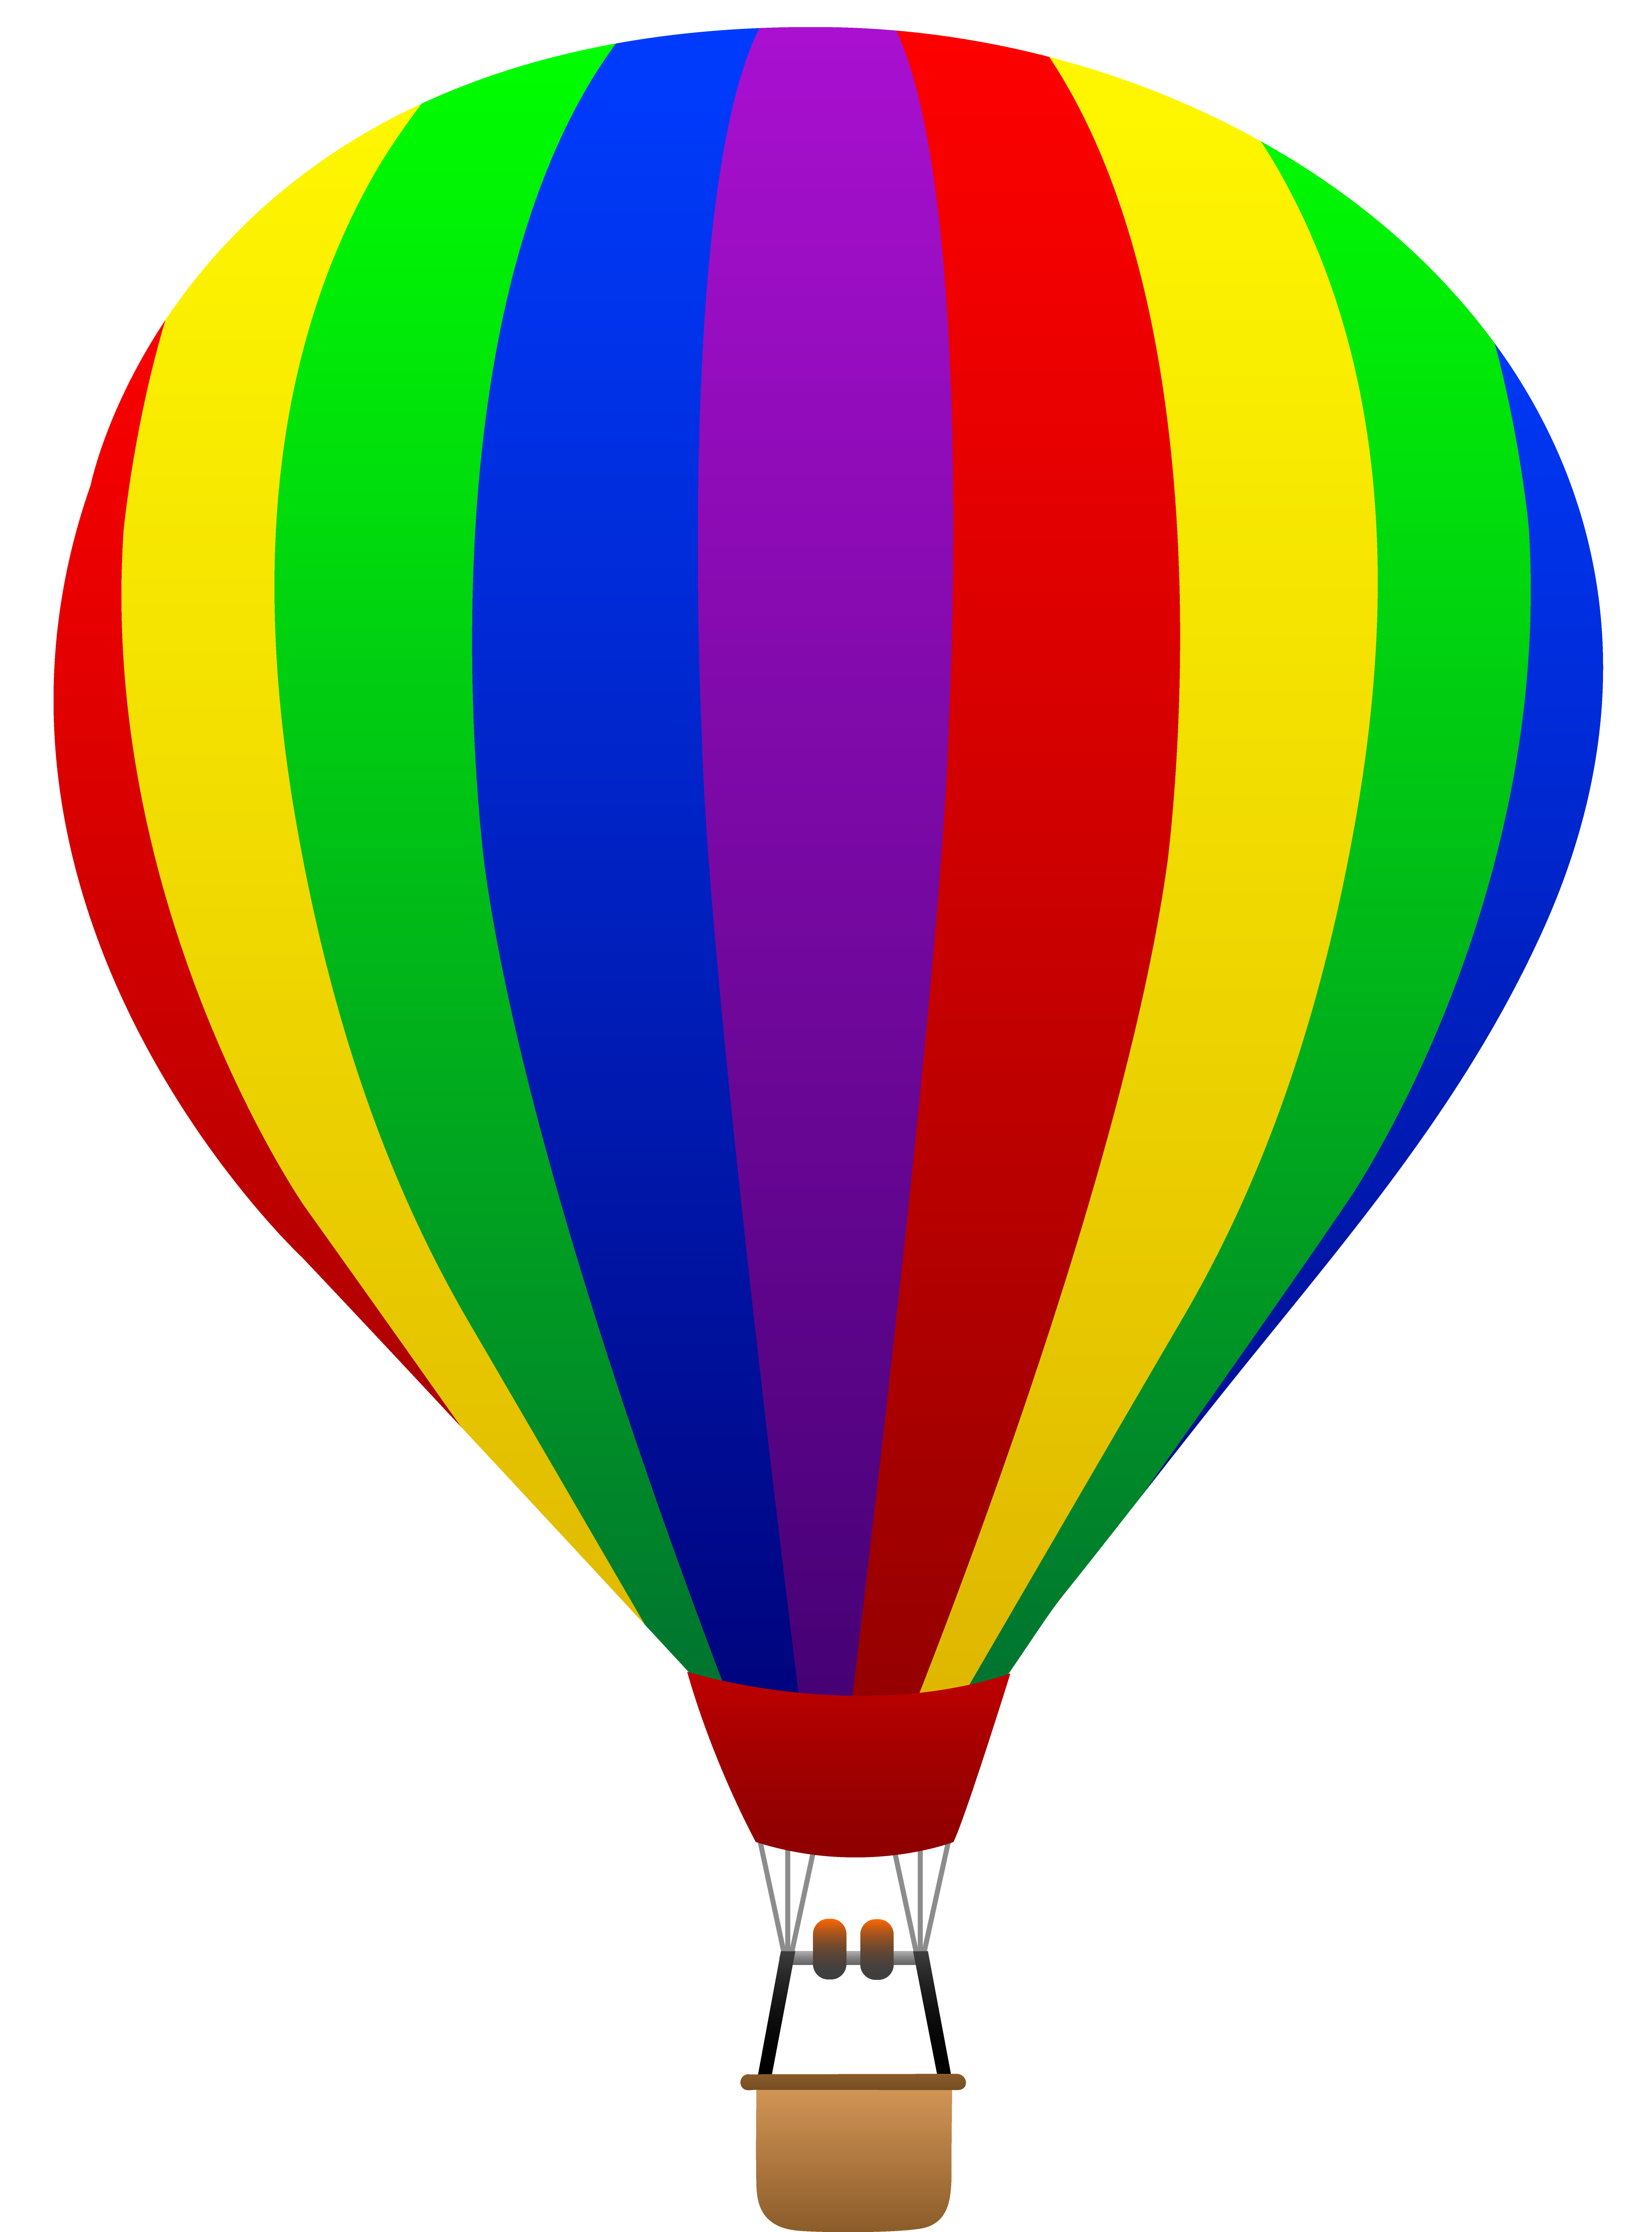 4114x5559 Free Clip Art Of A Fun Rainbow Striped Hot Air Balloon Sweet